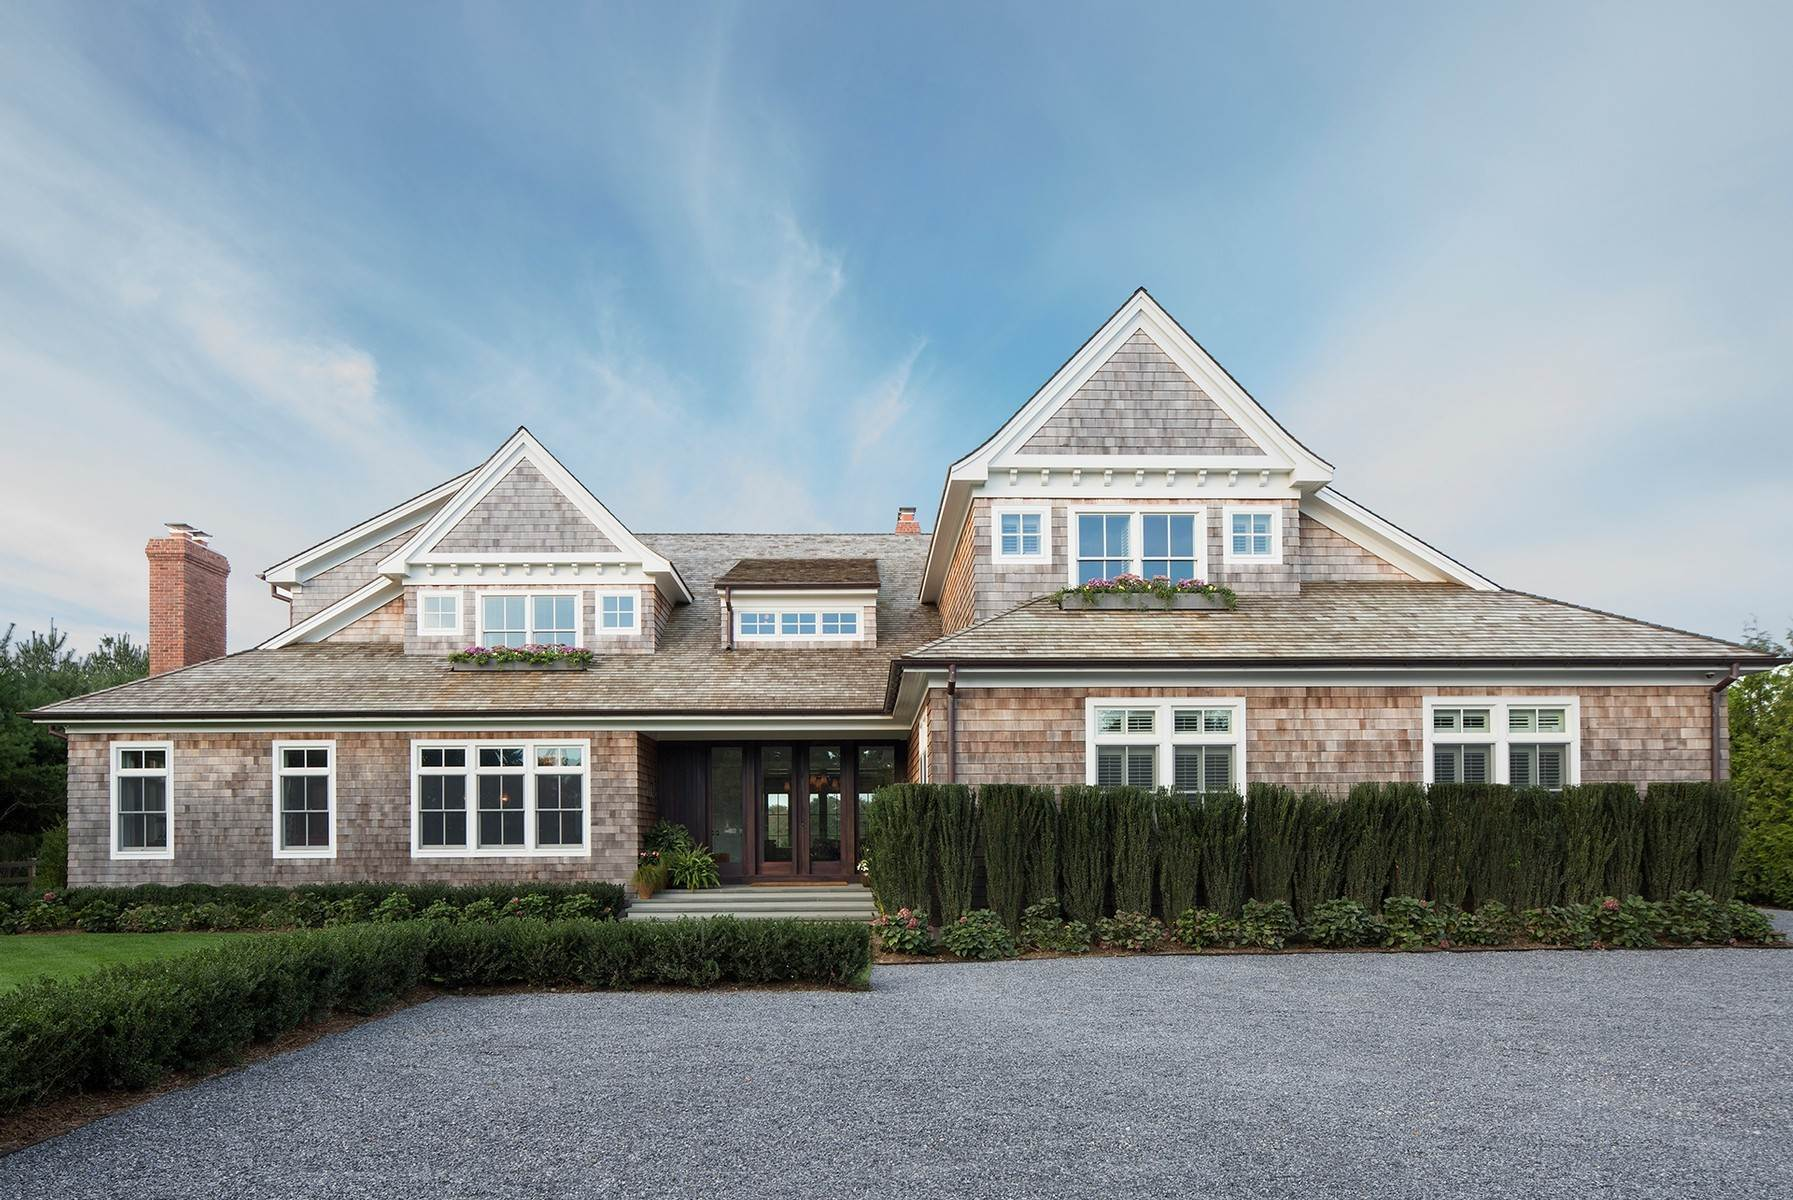 3. Single Family Home at Bridgehampton South Masterpiece 38 West Pond Drive, Bridgehampton, NY 11932